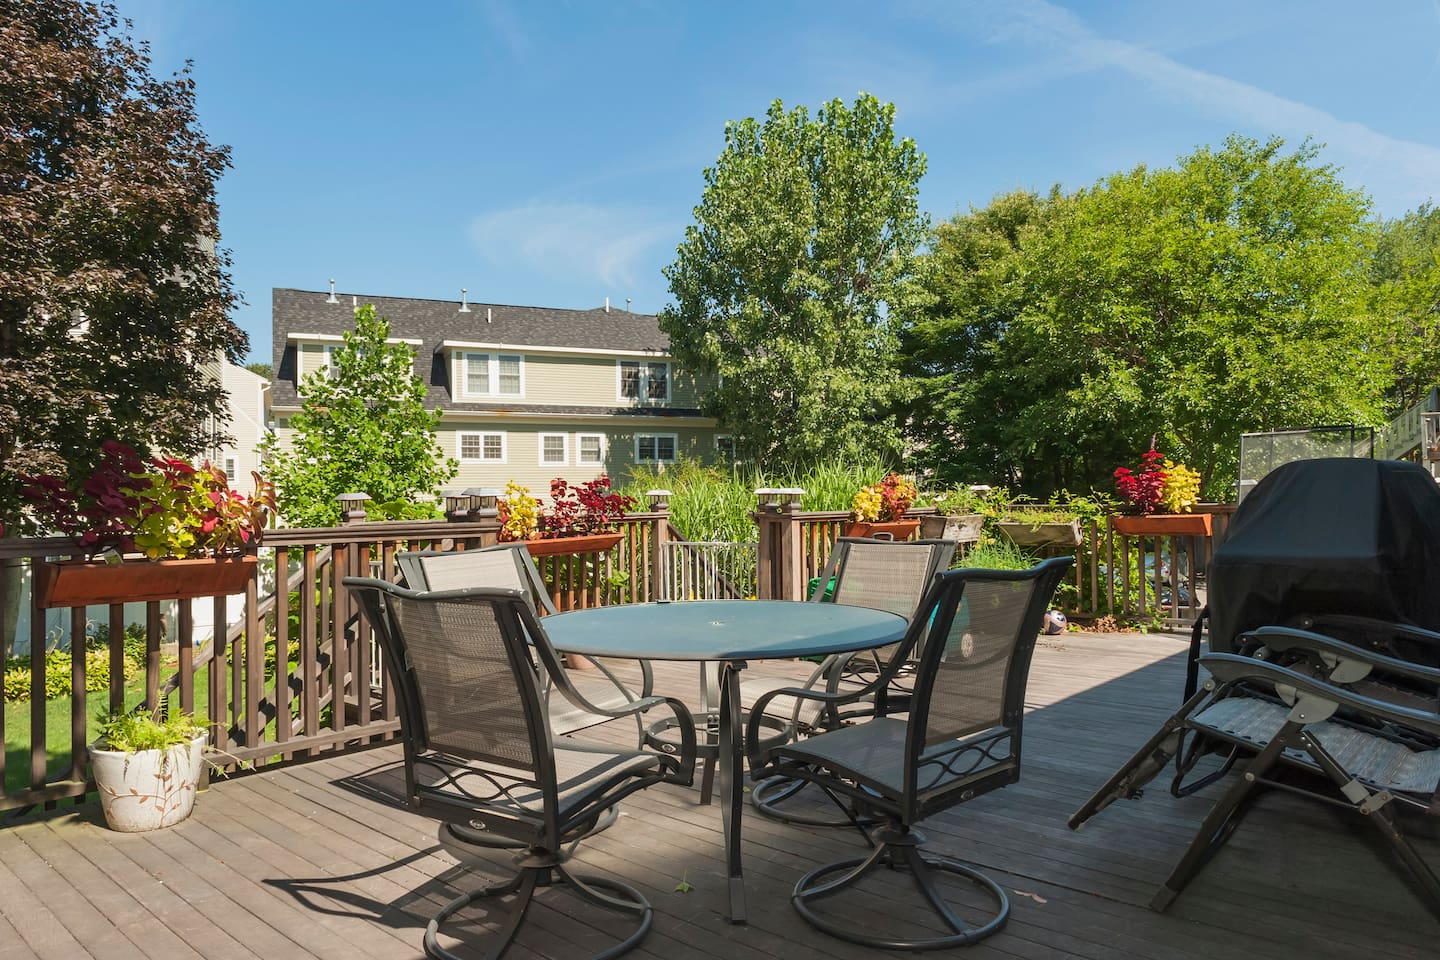 Direct deck access overlooking a  spacious yard and garden.